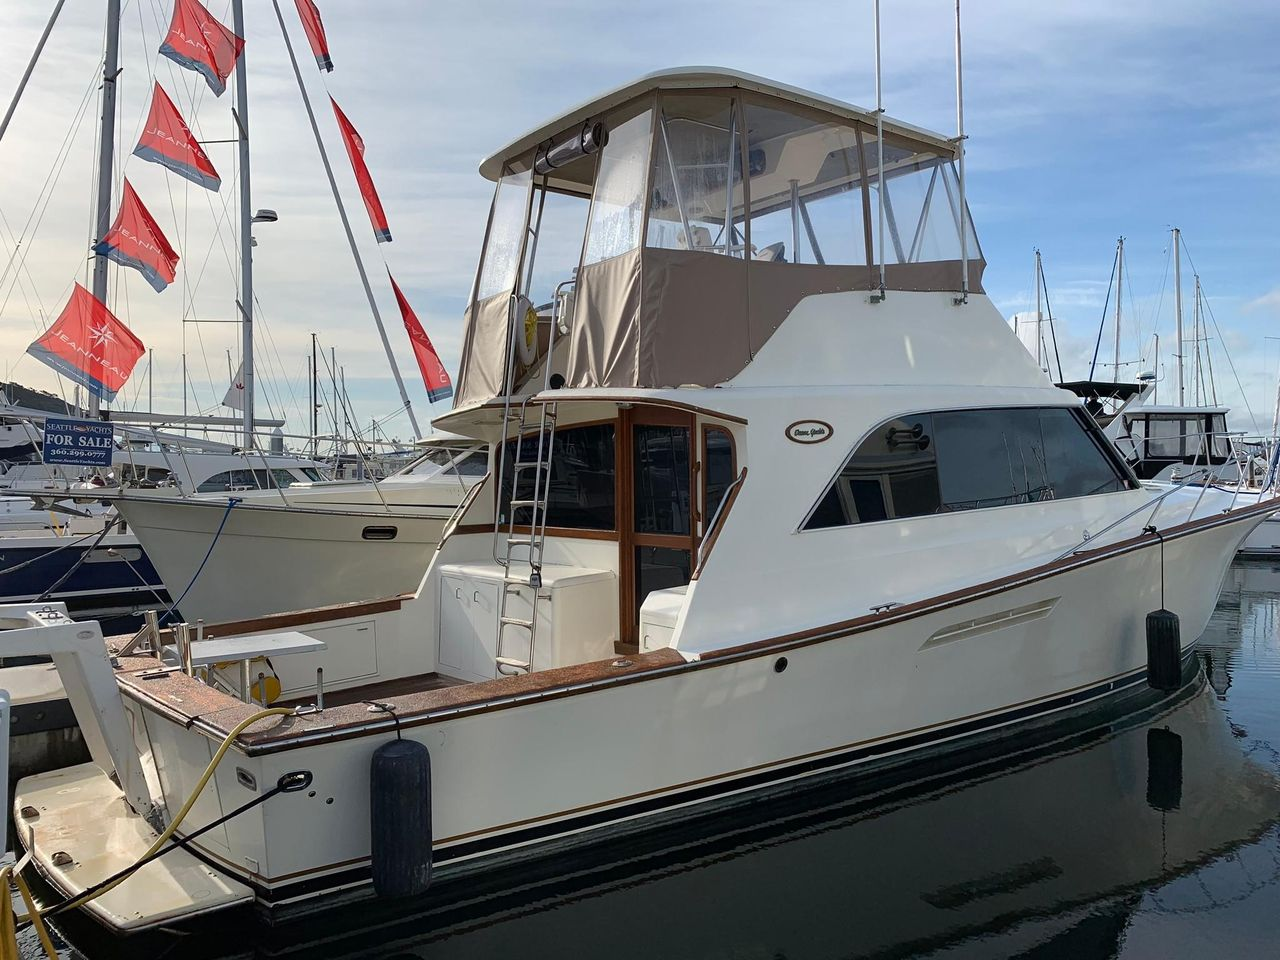 1987 Used Ocean Yachts 48 Sports Fishing Boat For Sale - $169,000